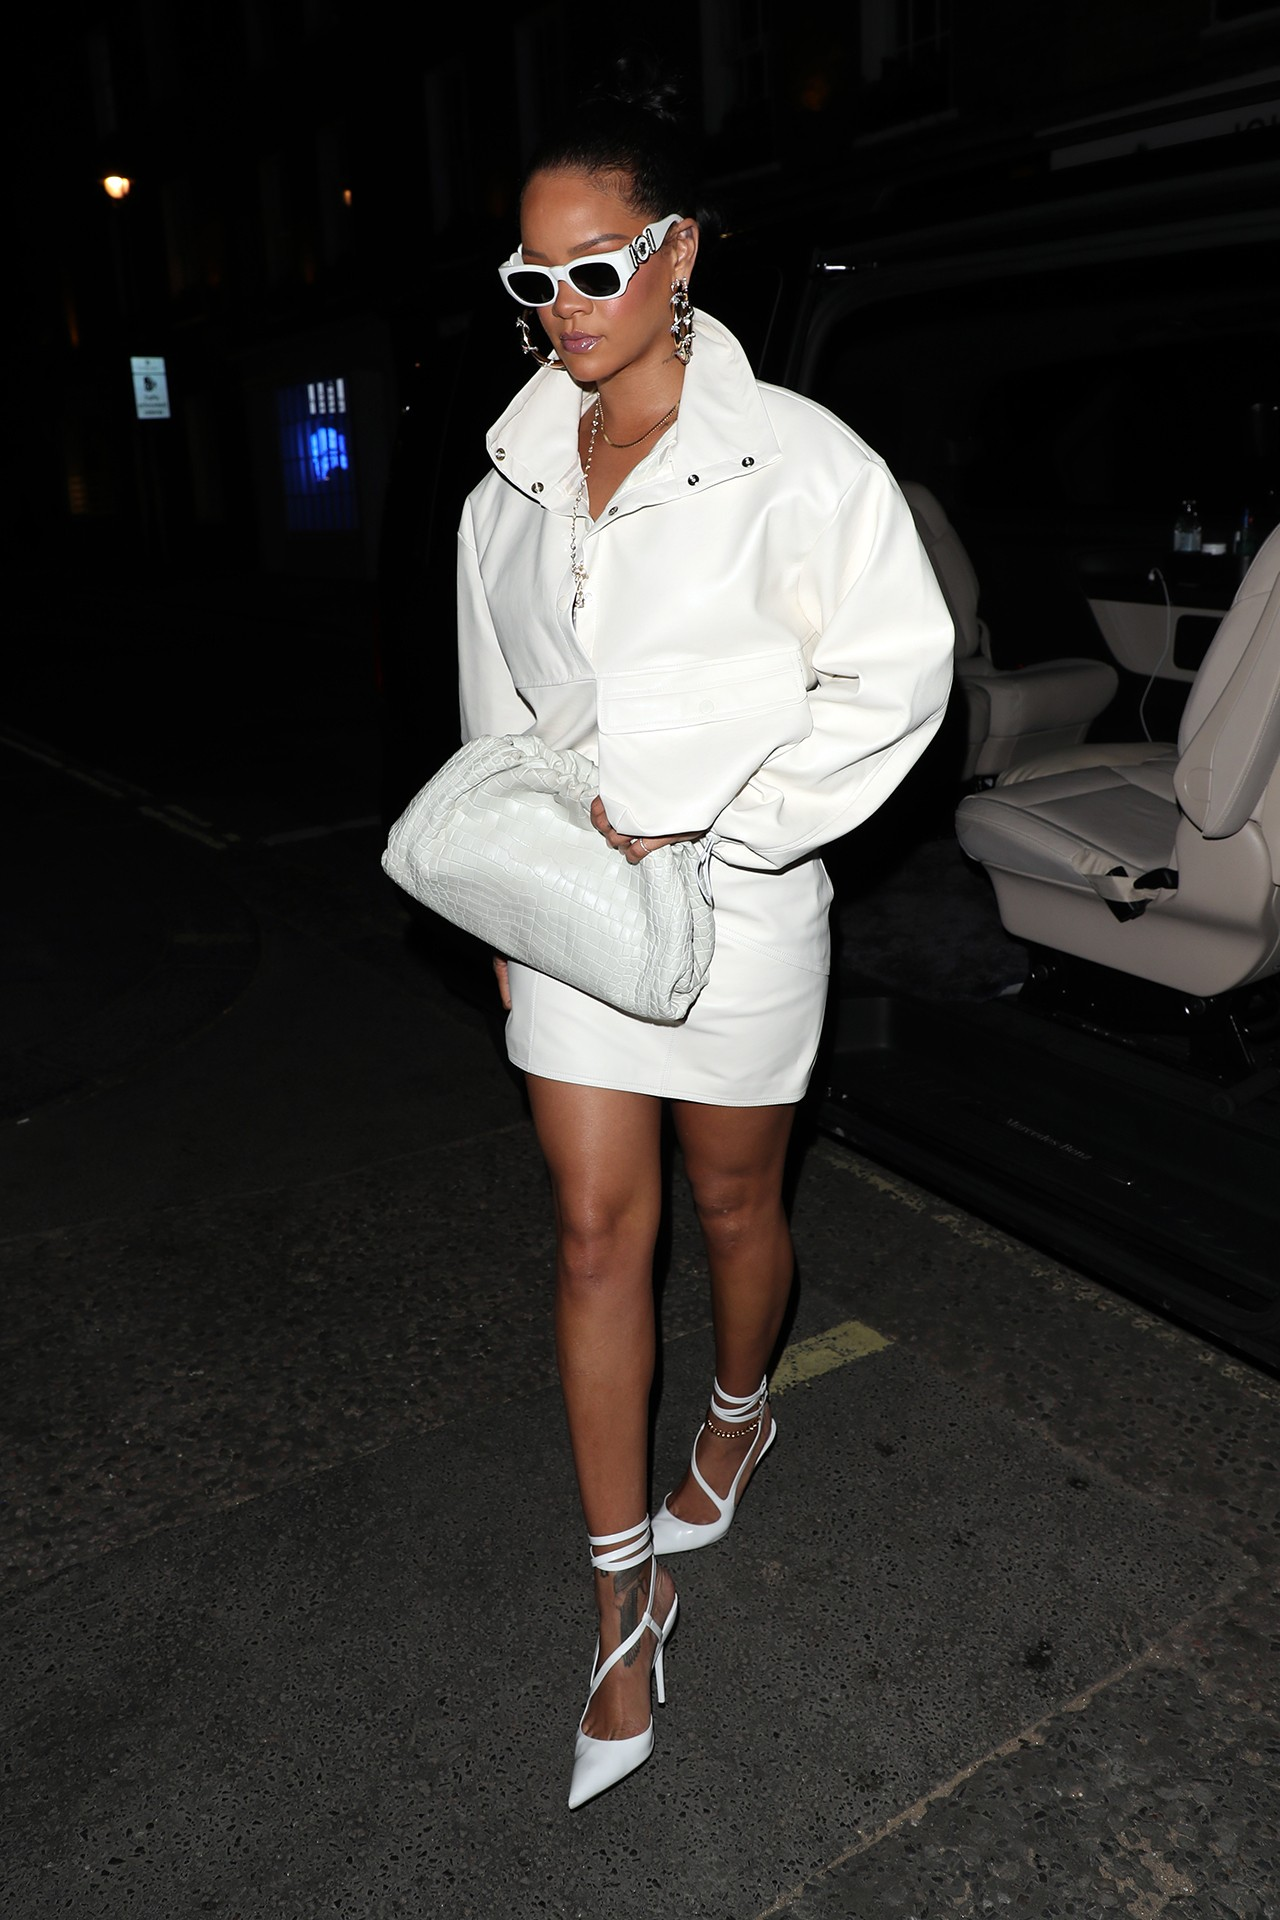 Rihanna Robyn Fenty Street Style White Tube Dress Sunglasses Necklace Half Up Hairstyle Tattoos